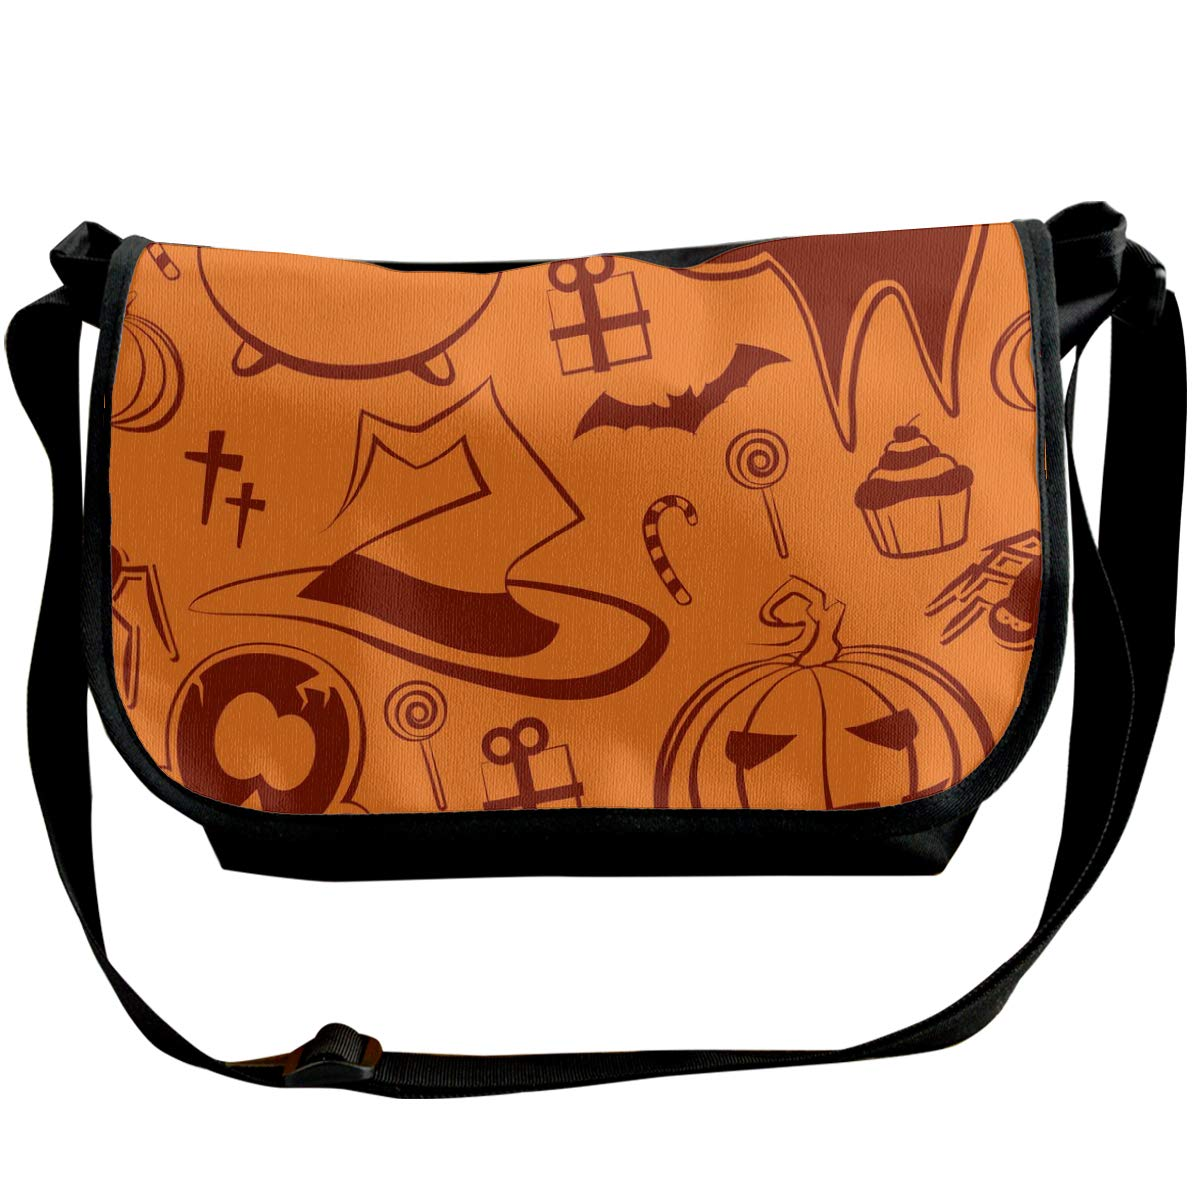 Taslilye Halloween Pattern Vector Image Customized Wide Crossbody Shoulder Bag For Men And Women For Daily Work Or Travel